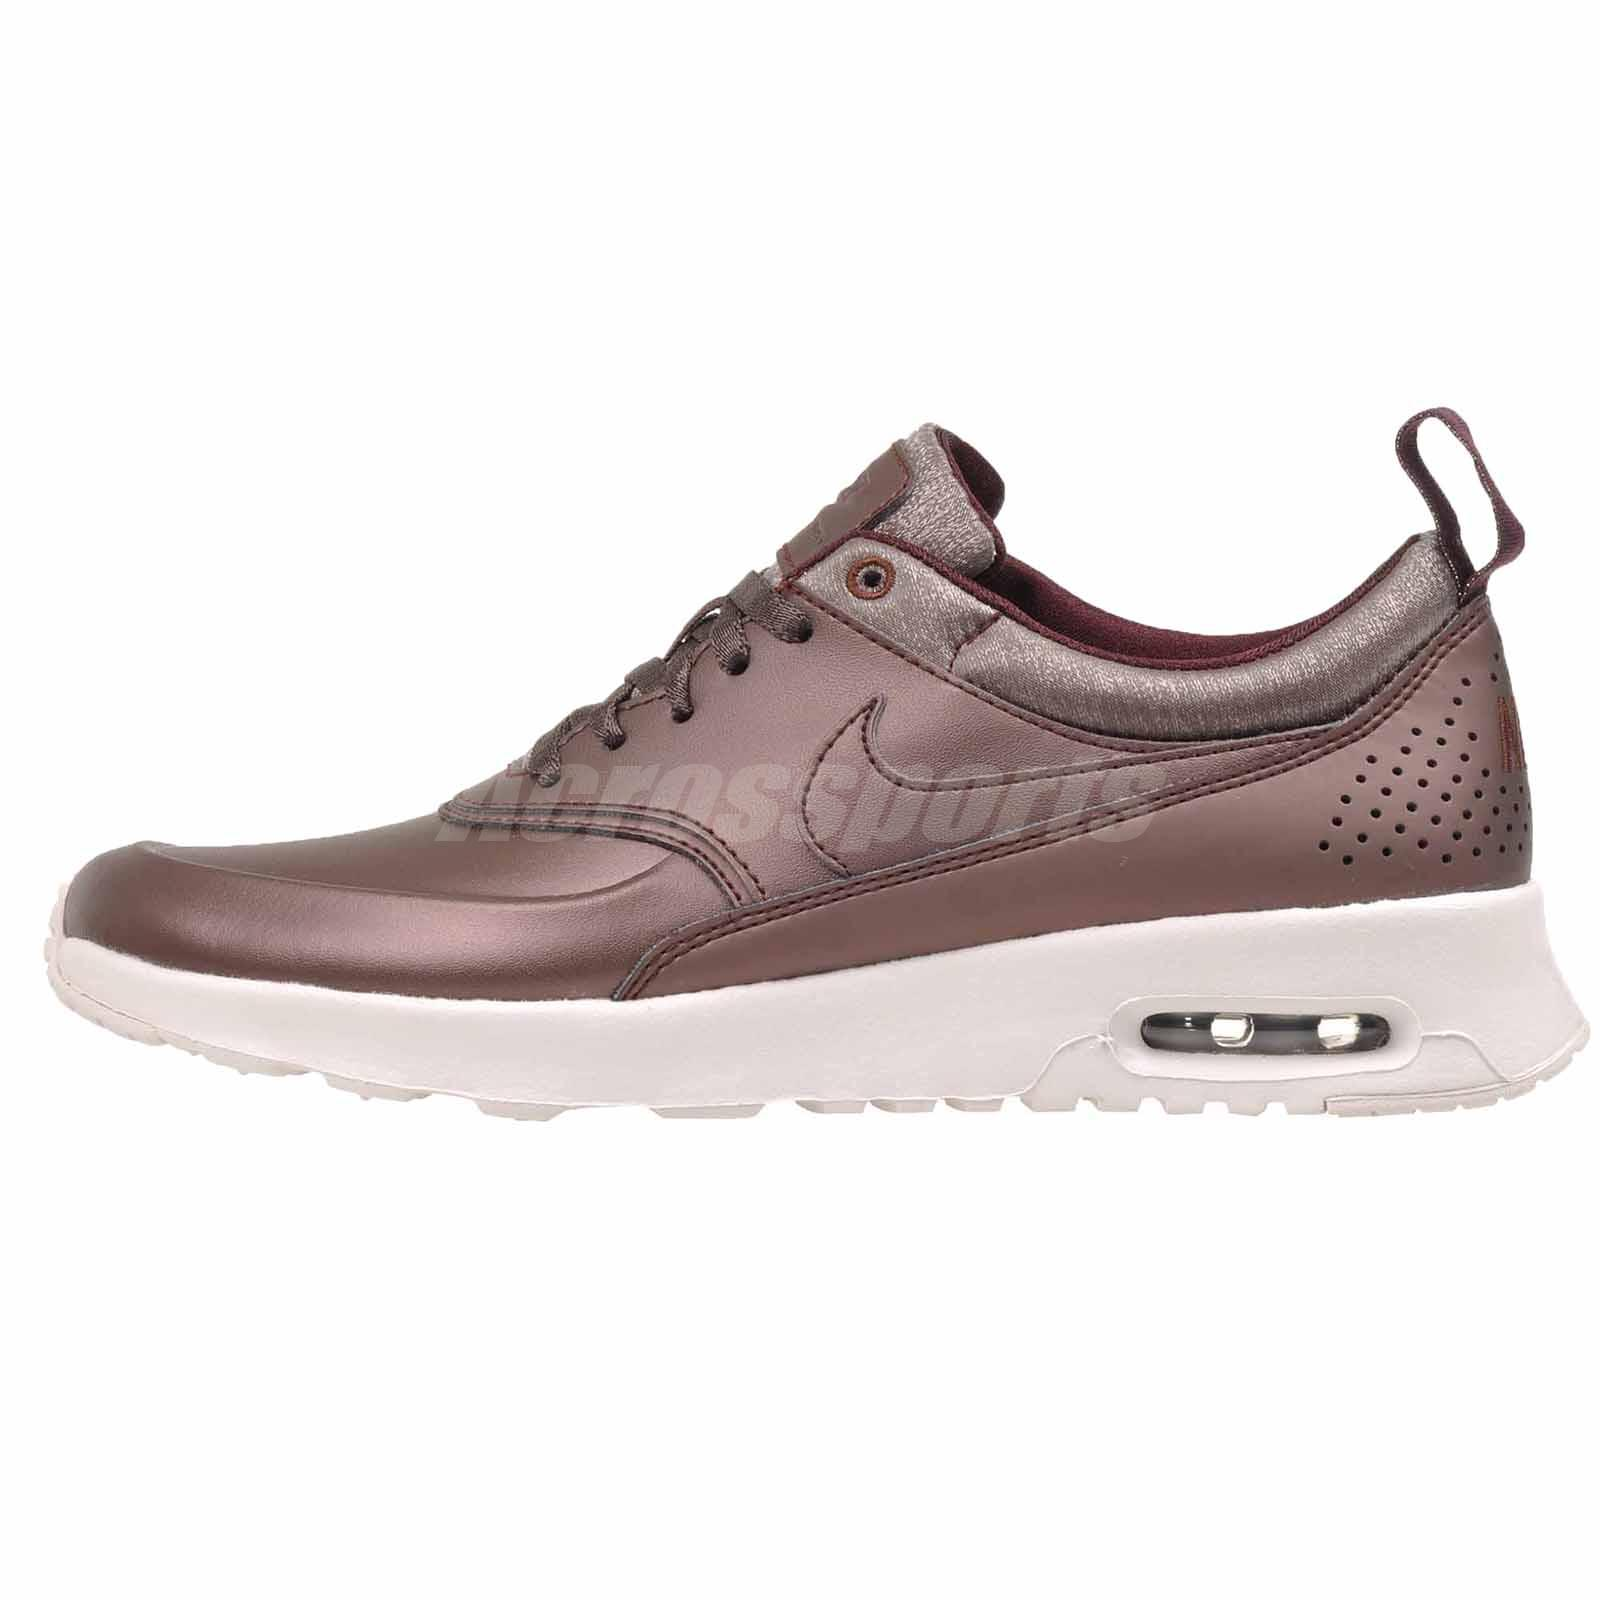 Details about Nike Wmns Air Max Thea PRM Running Premium Shoes Mahogany 616723 900